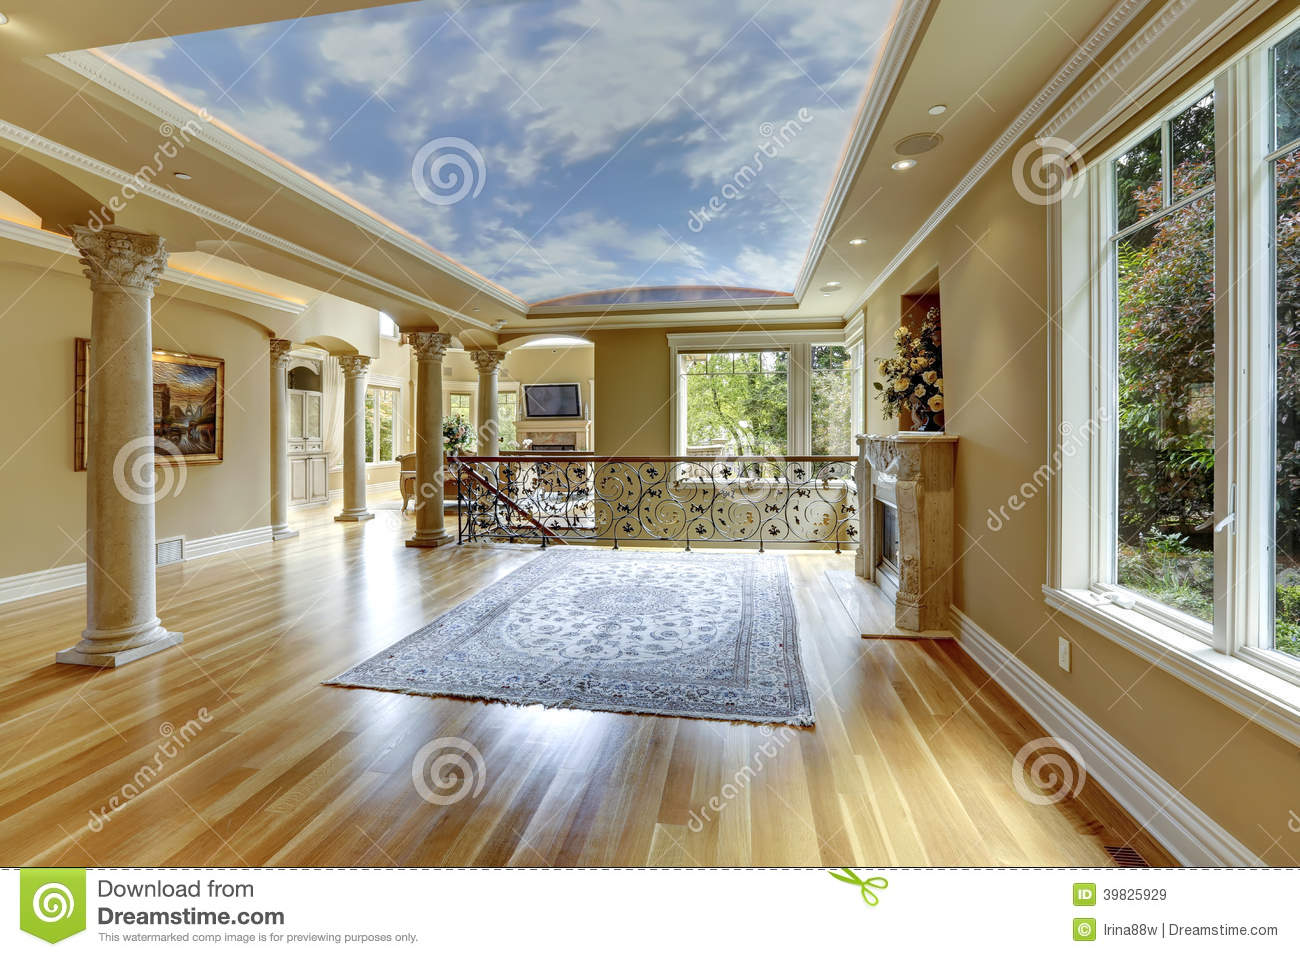 Luxury house interior empty living room stock photo for Villa de luxe moderne interieur chambre